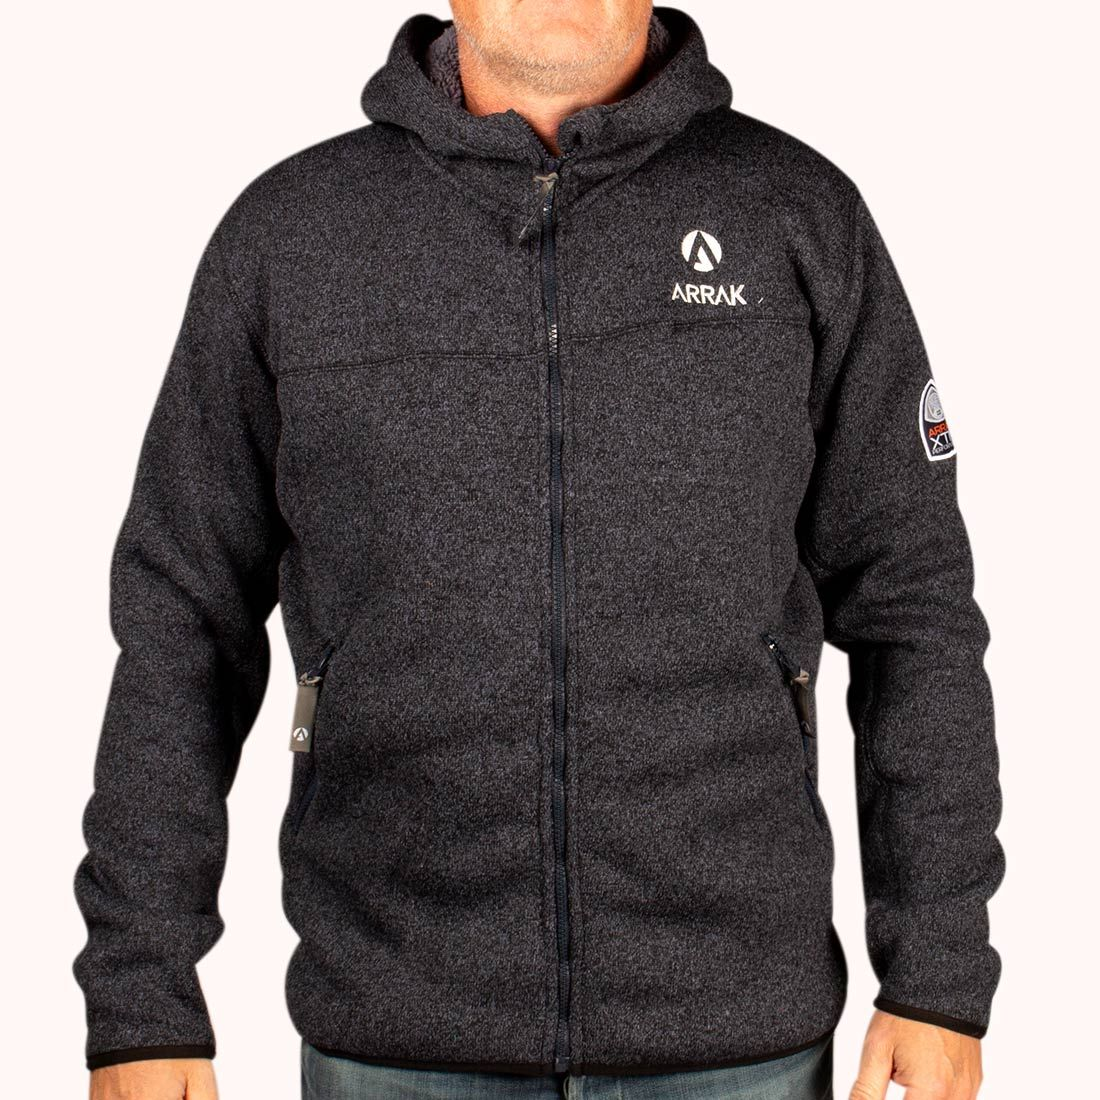 e4ebd687fef NYHED: Pilefleece Hood Men Black - Arrak Outdoor - Hirtshals Hundepension v/Jan  Sørensen